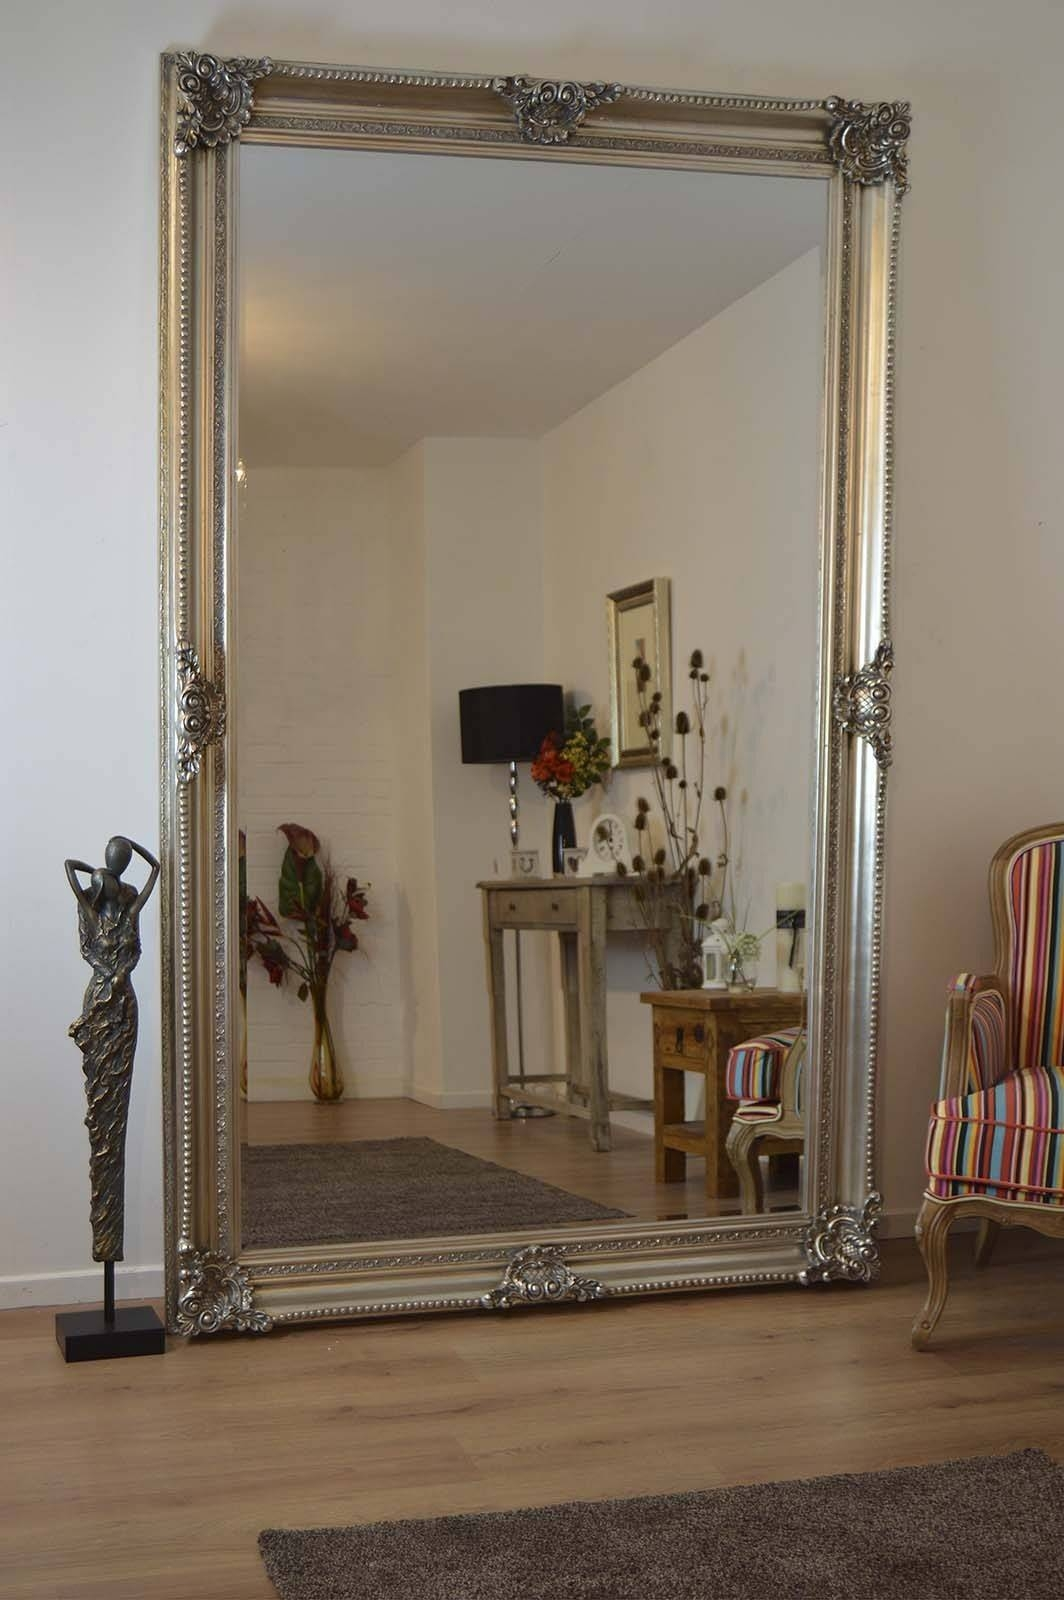 Antique Wall Mirrors Antique Wall Mirrors Large Antique Wall pertaining to Antique Large Mirrors (Image 14 of 25)